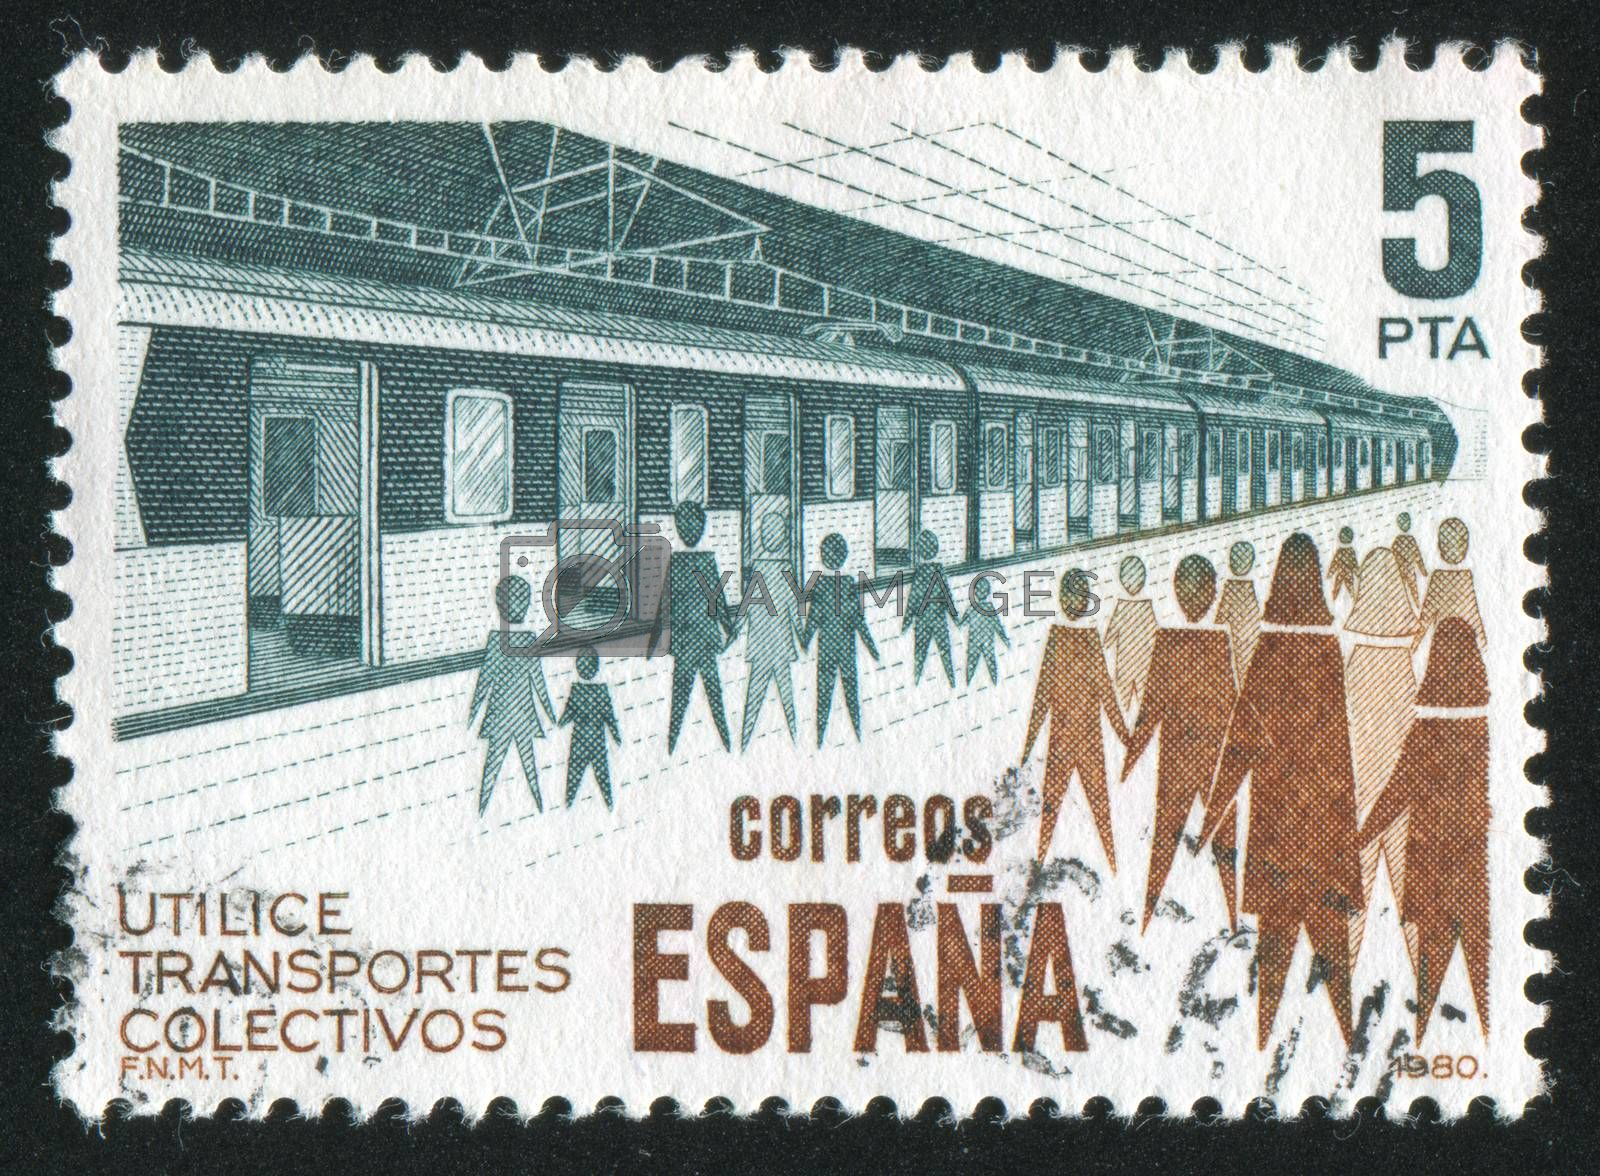 SPAIN - CIRCA 1980: stamp printed by Spain, shows Subway and People, circa 1980